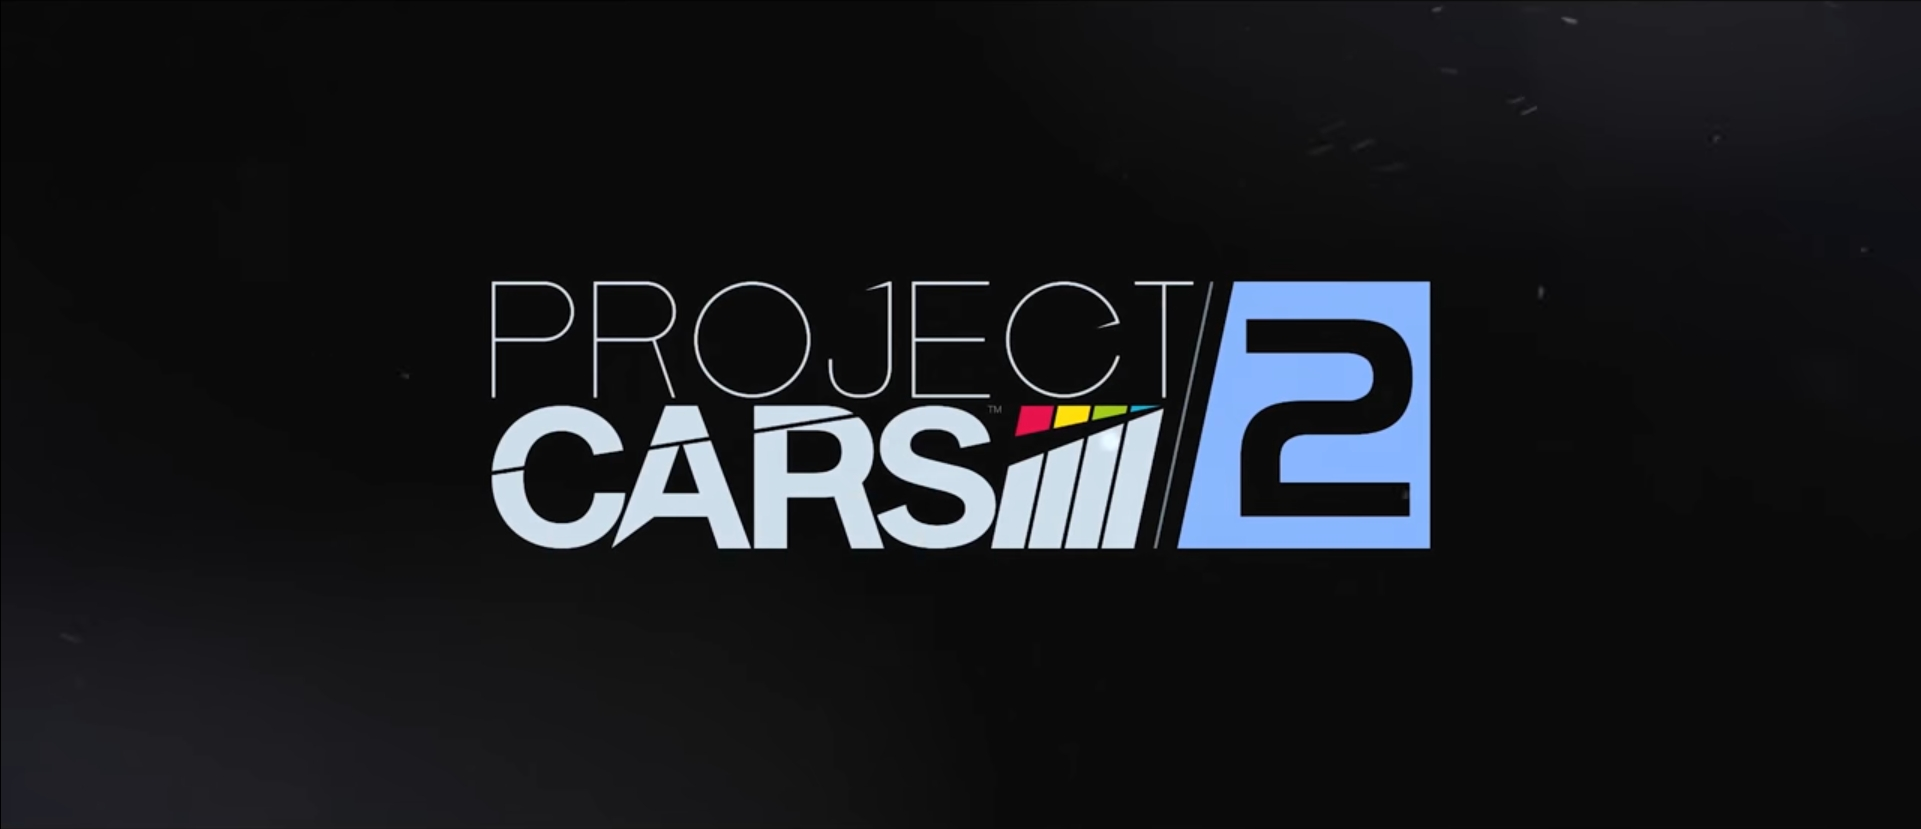 Project CARS 2 Ps4 Pro